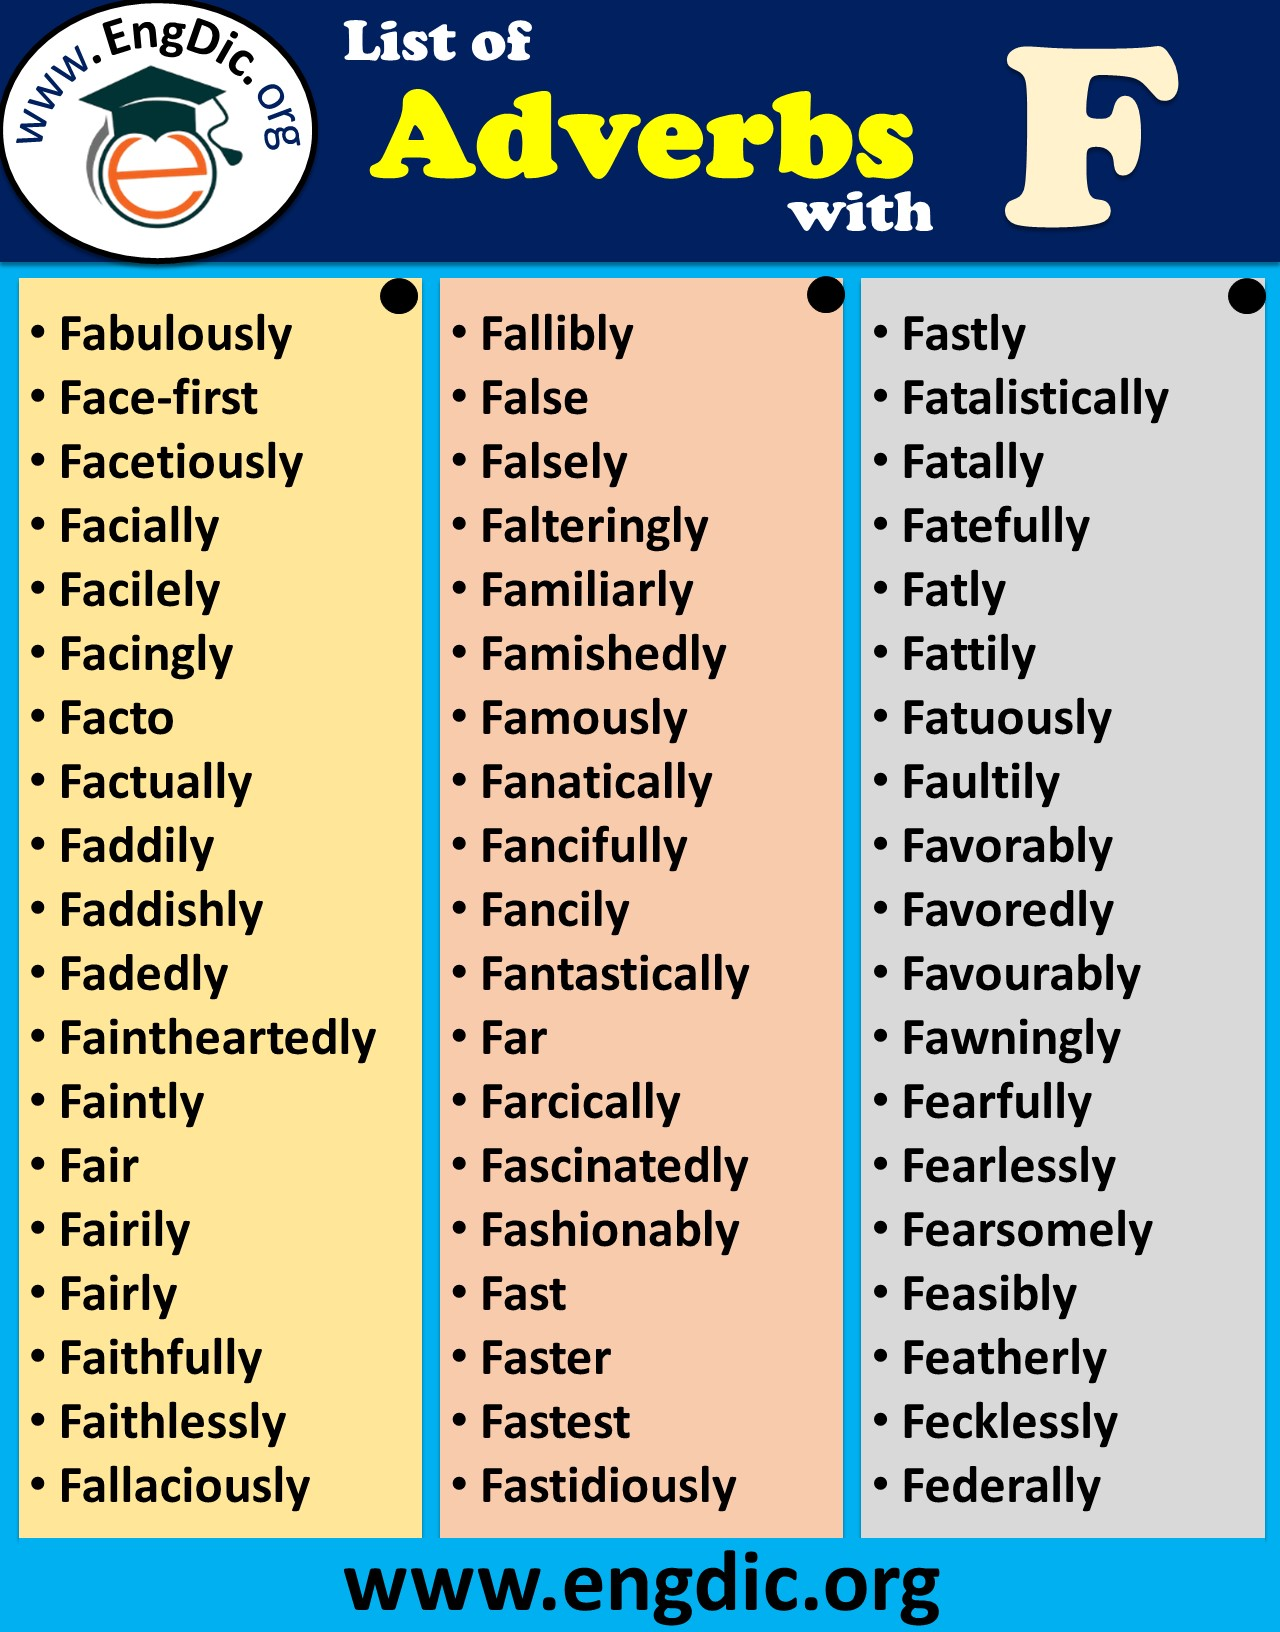 adverbs starting with f